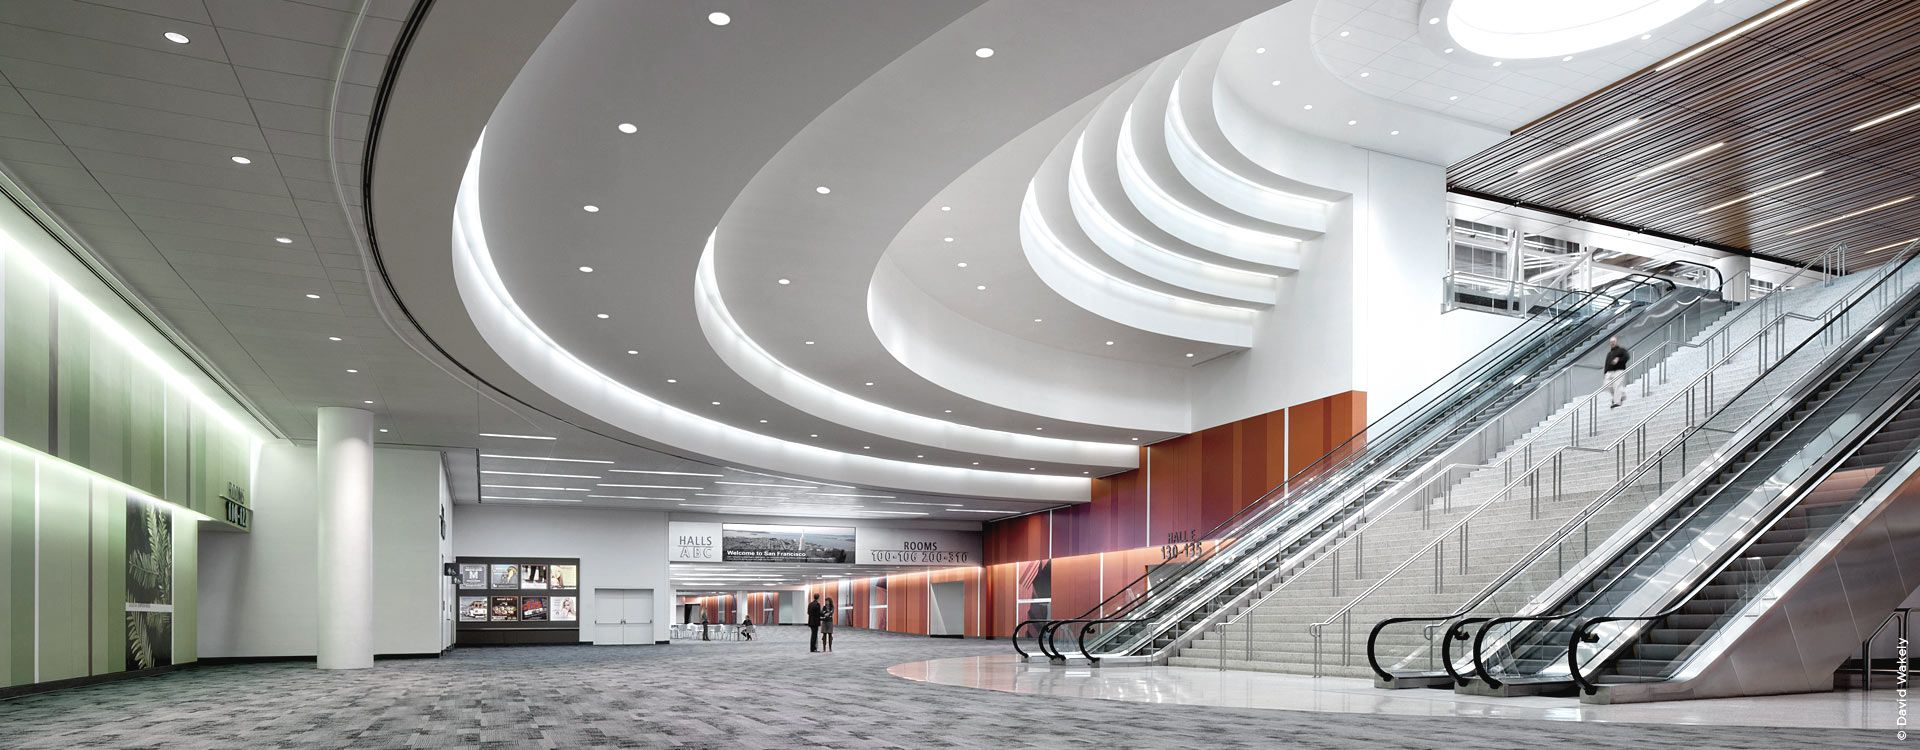 bnr-Moscone-Convention-Center_HospitalityDavid-Wakely